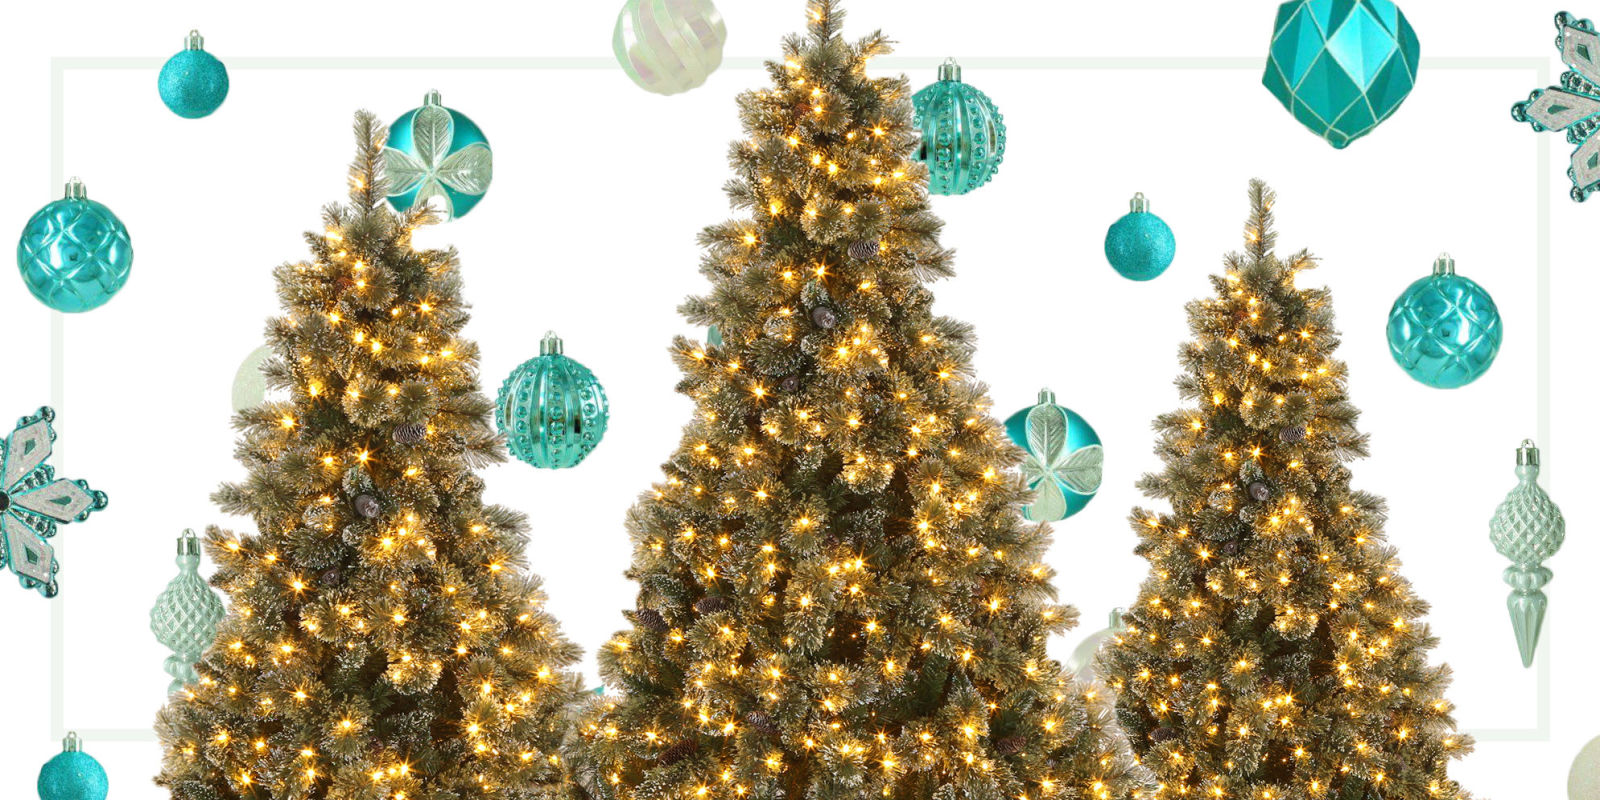 win an artificial christmas tree and ornament set giveaway from